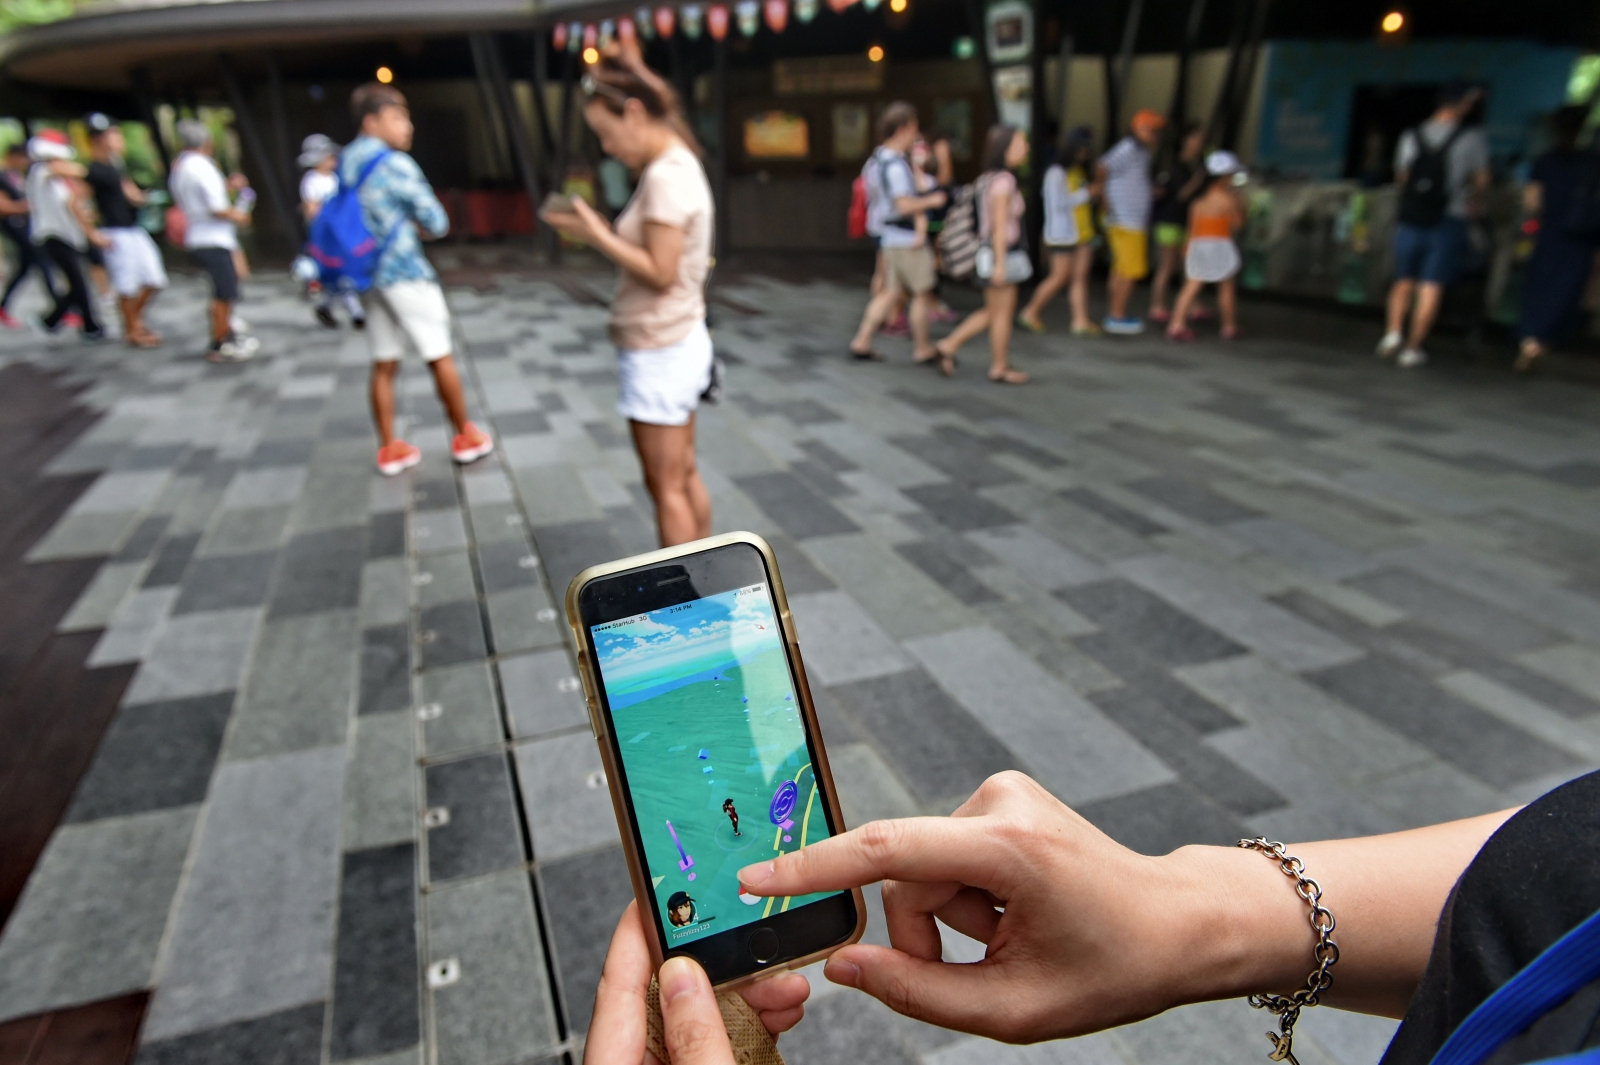 https://d.ibtimes.co.uk/en/full/1572676/pokemon-go.jpg